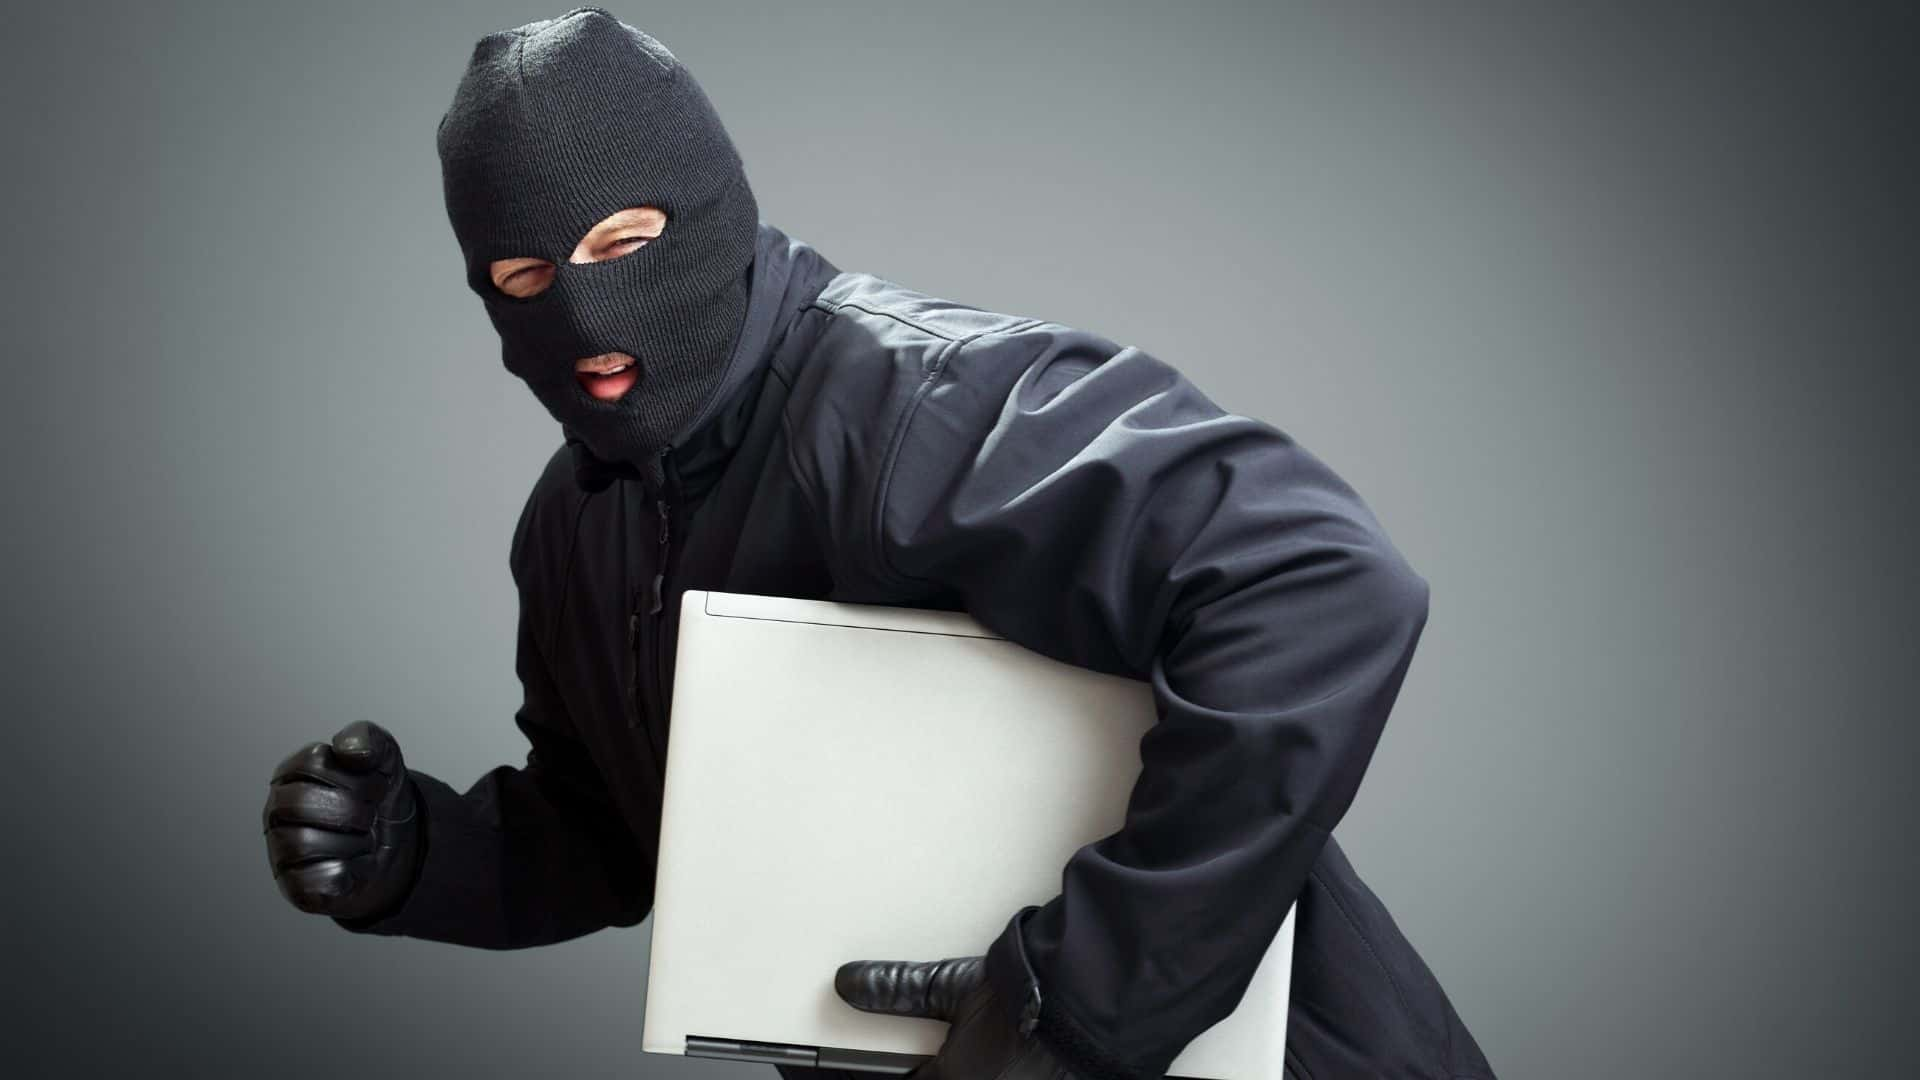 10 Ways to Secure Your Computer from Hackers